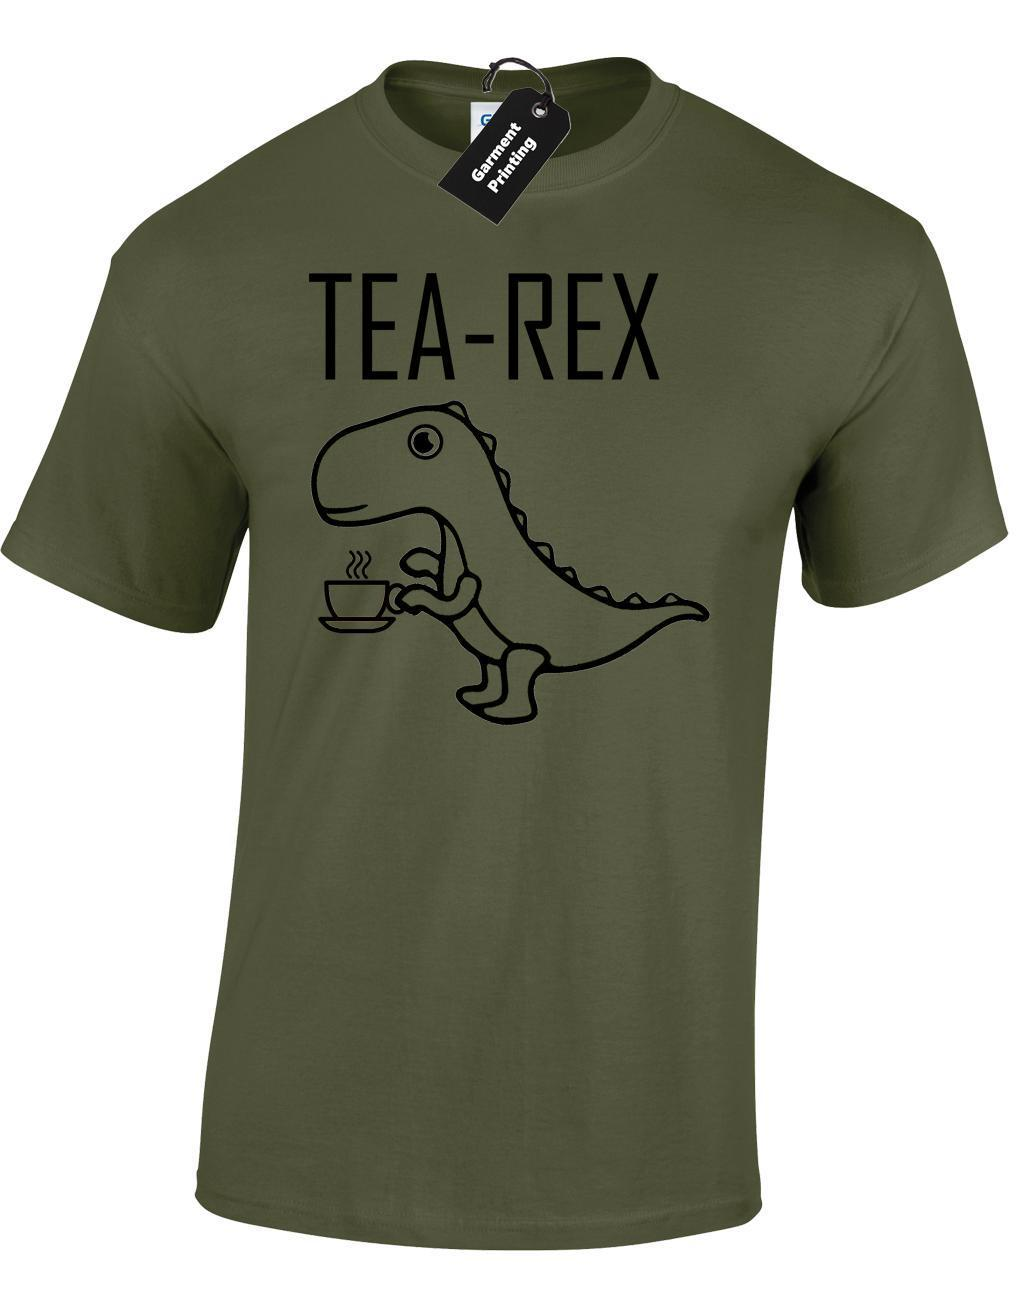 3d017267 TEA REX MENS T SHIRT FUNNY JOKE PUN JURASSIC DINOSAUR DRINK COFFEE NOVELTY  GIFT Awesome Tee Shirt Designs T Shirts Awesome From Peng32, $14.67|  DHgate.Com